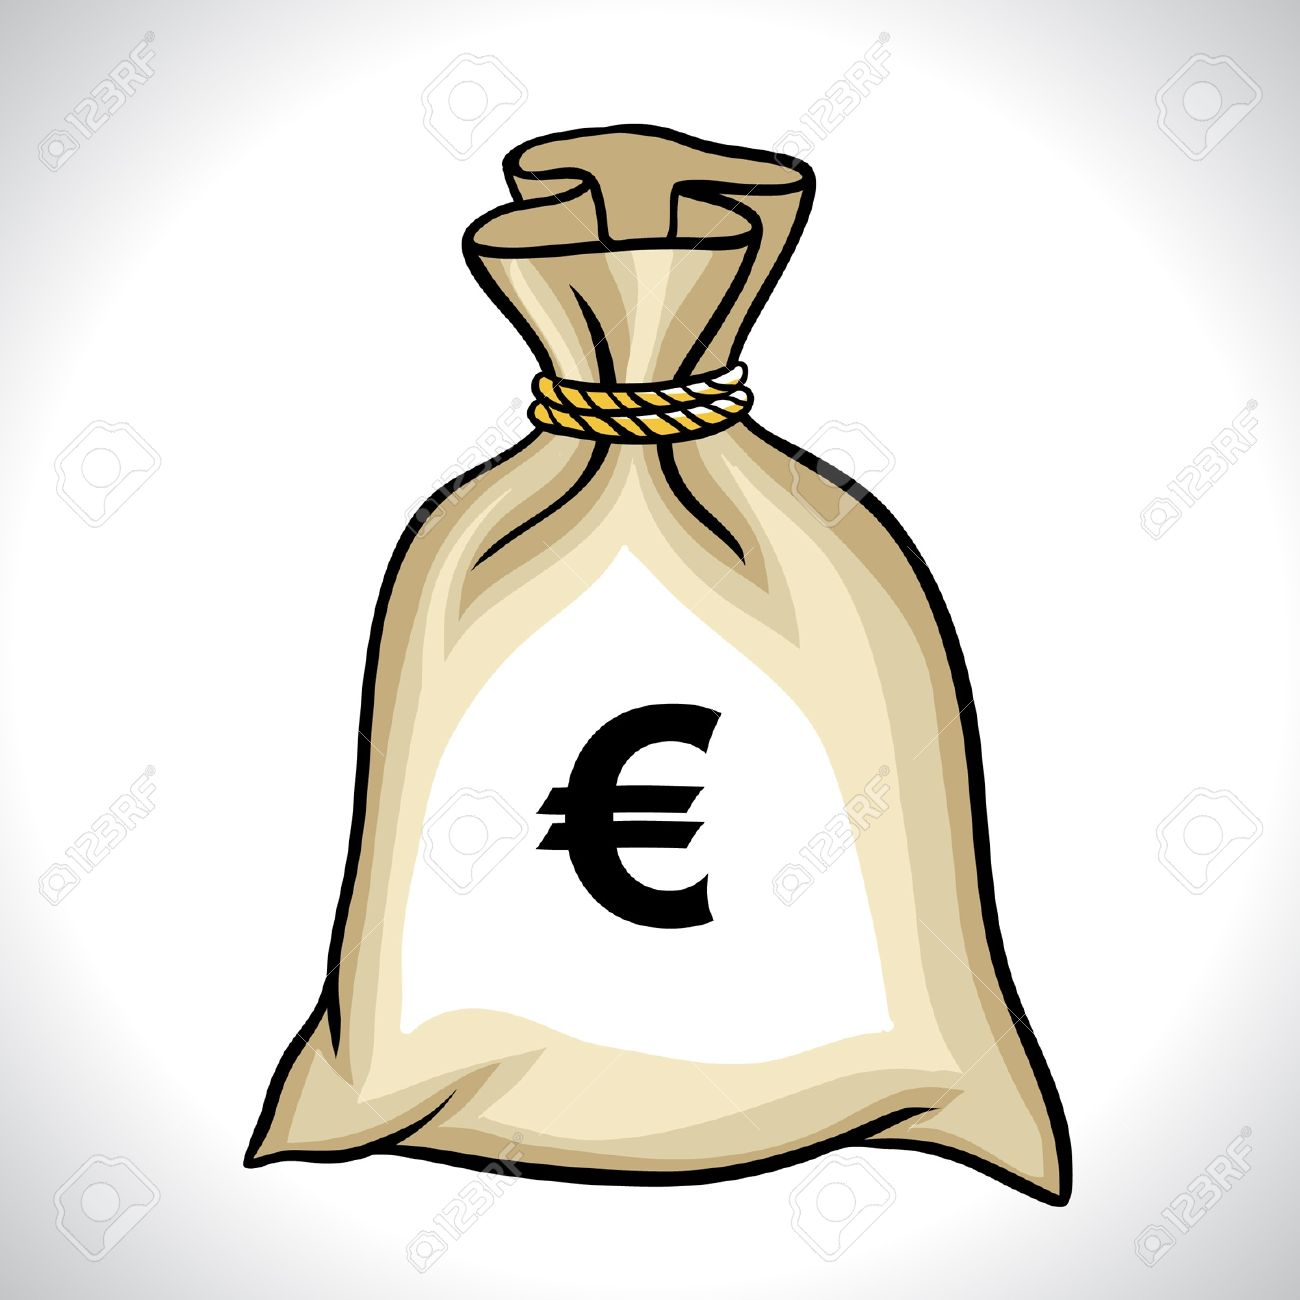 Money Bag With Euro Sign Vector Illustration Royalty Free Cliparts